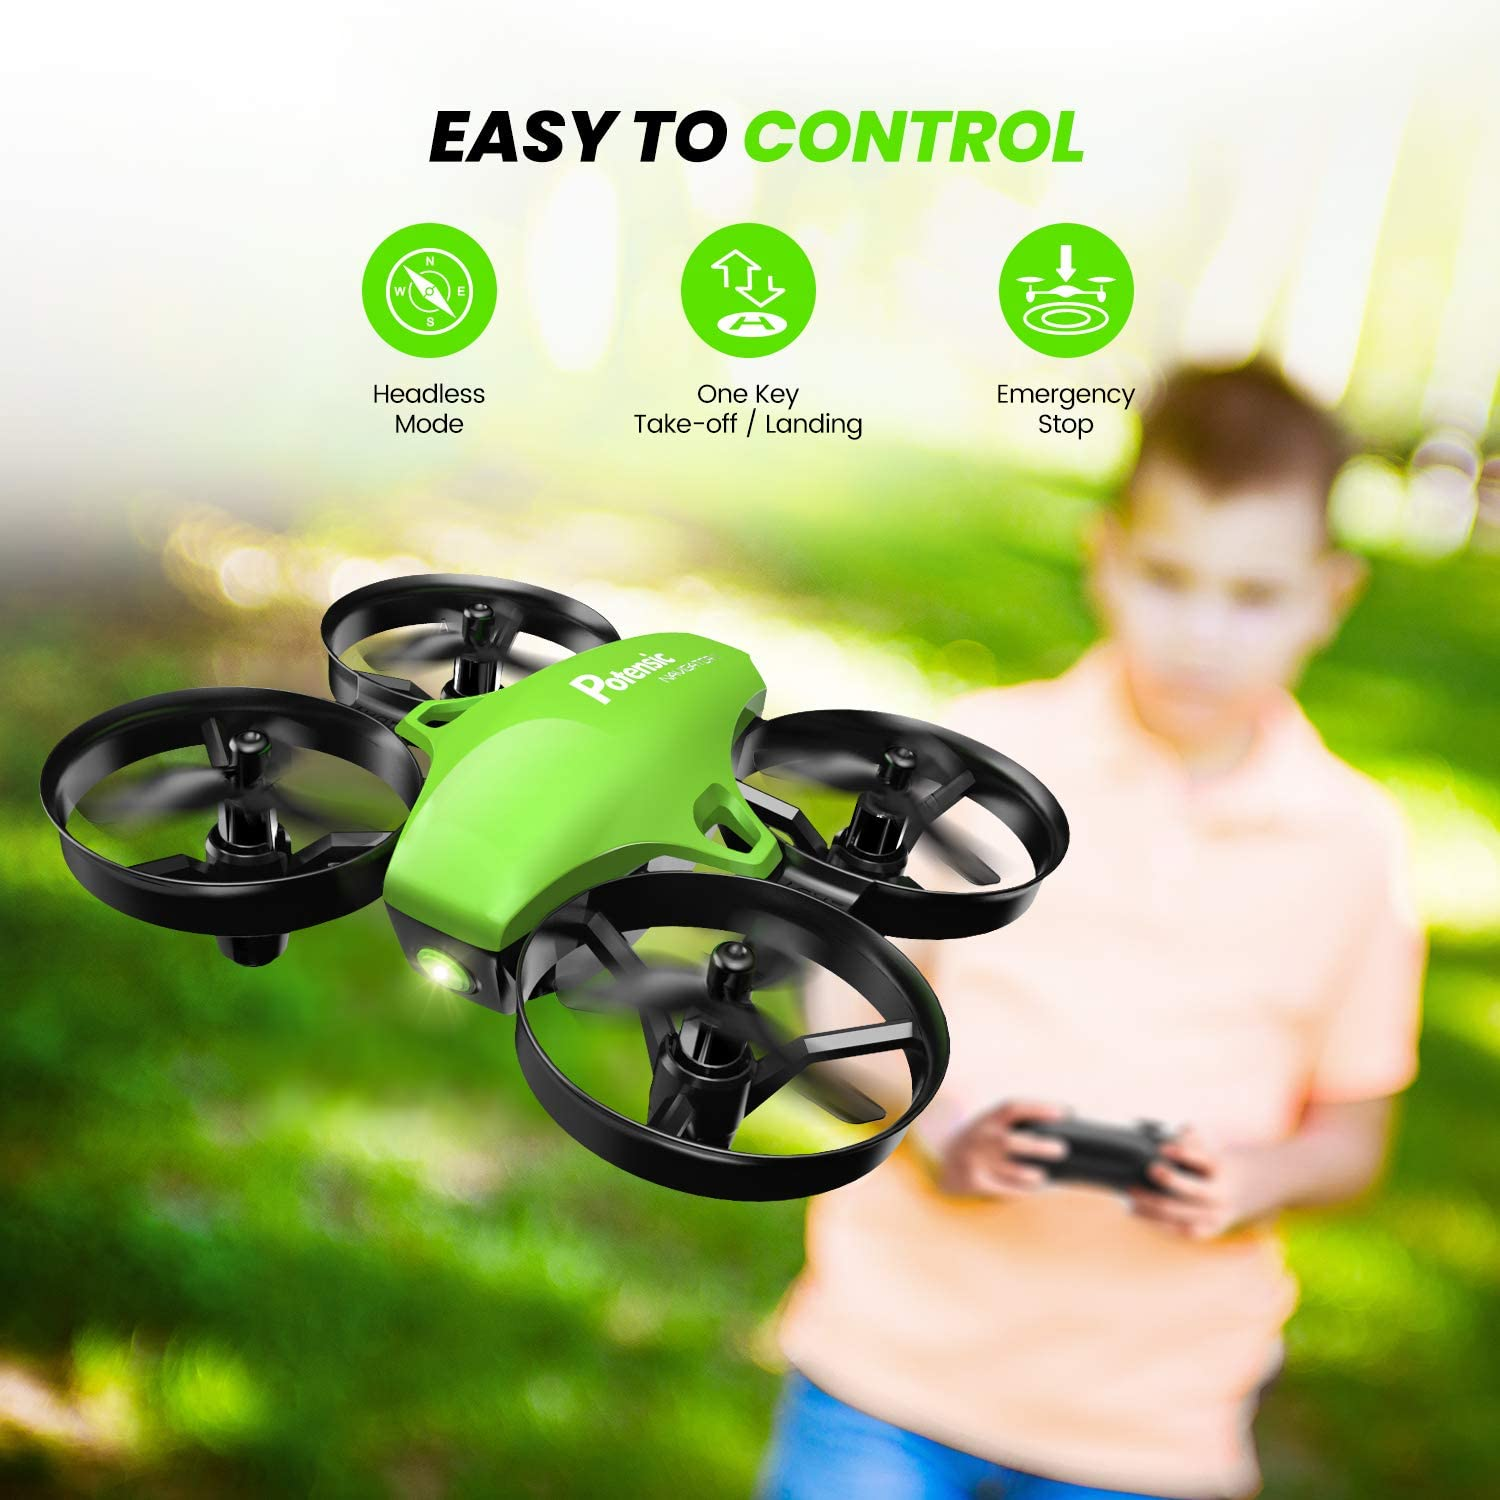 potensic drones with cameras for kids best drones for kids